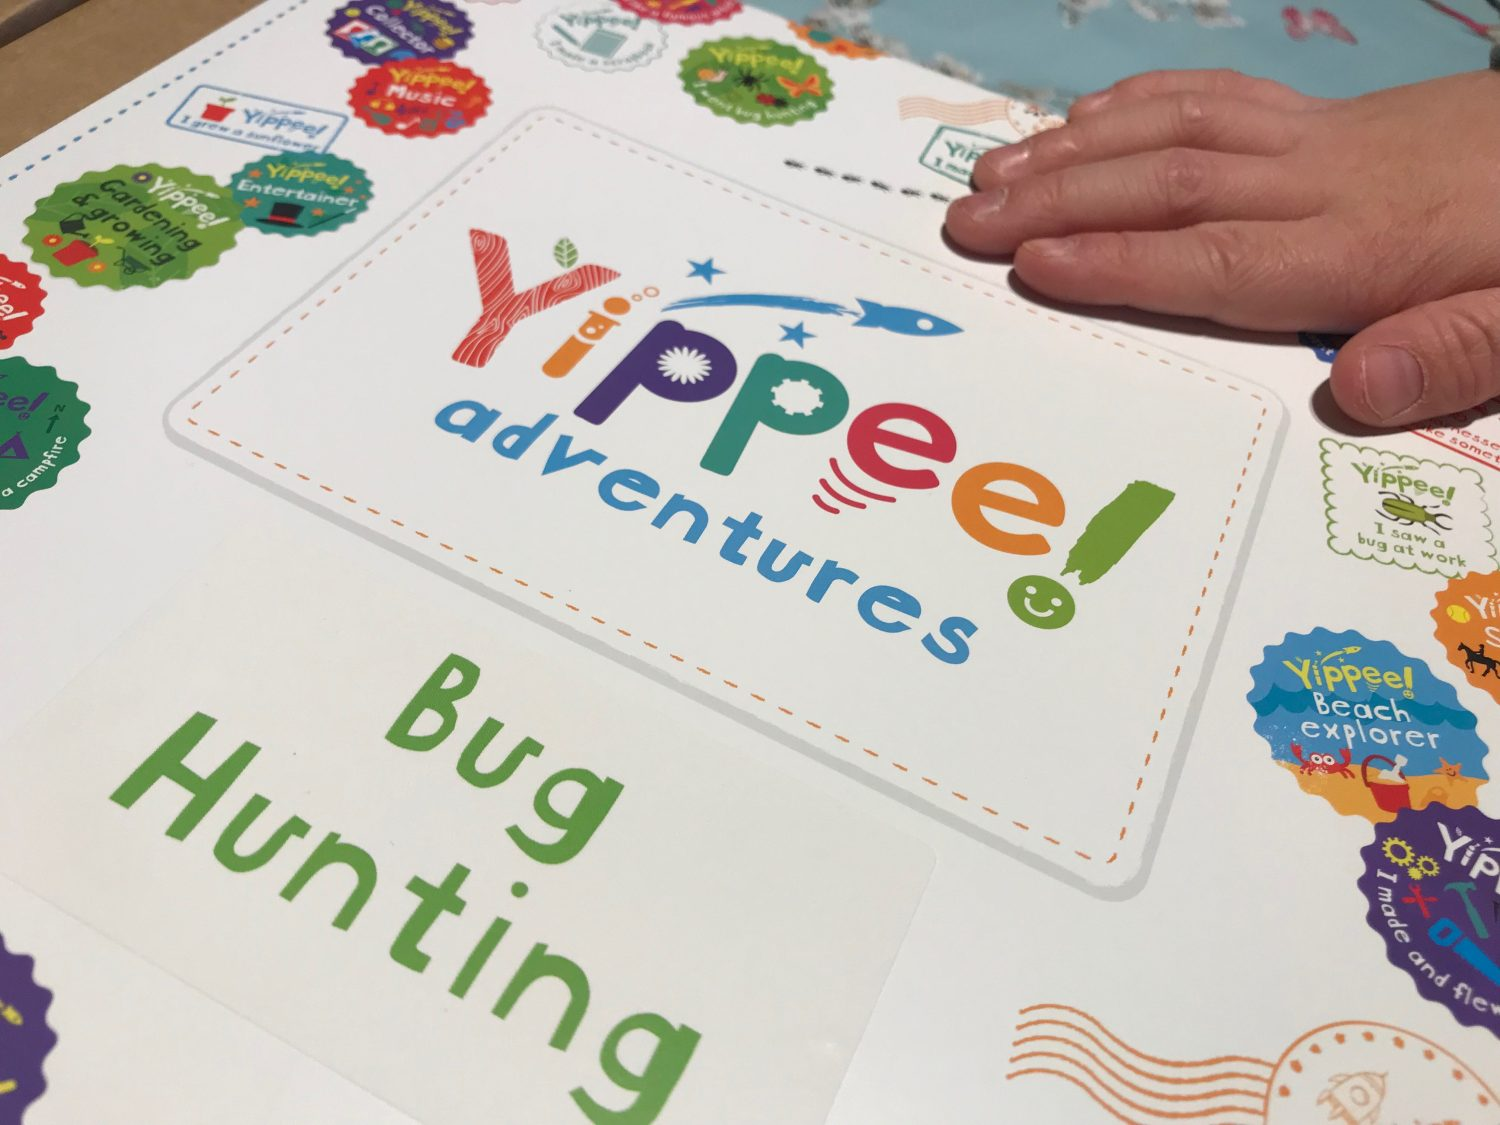 Yippee Adventures